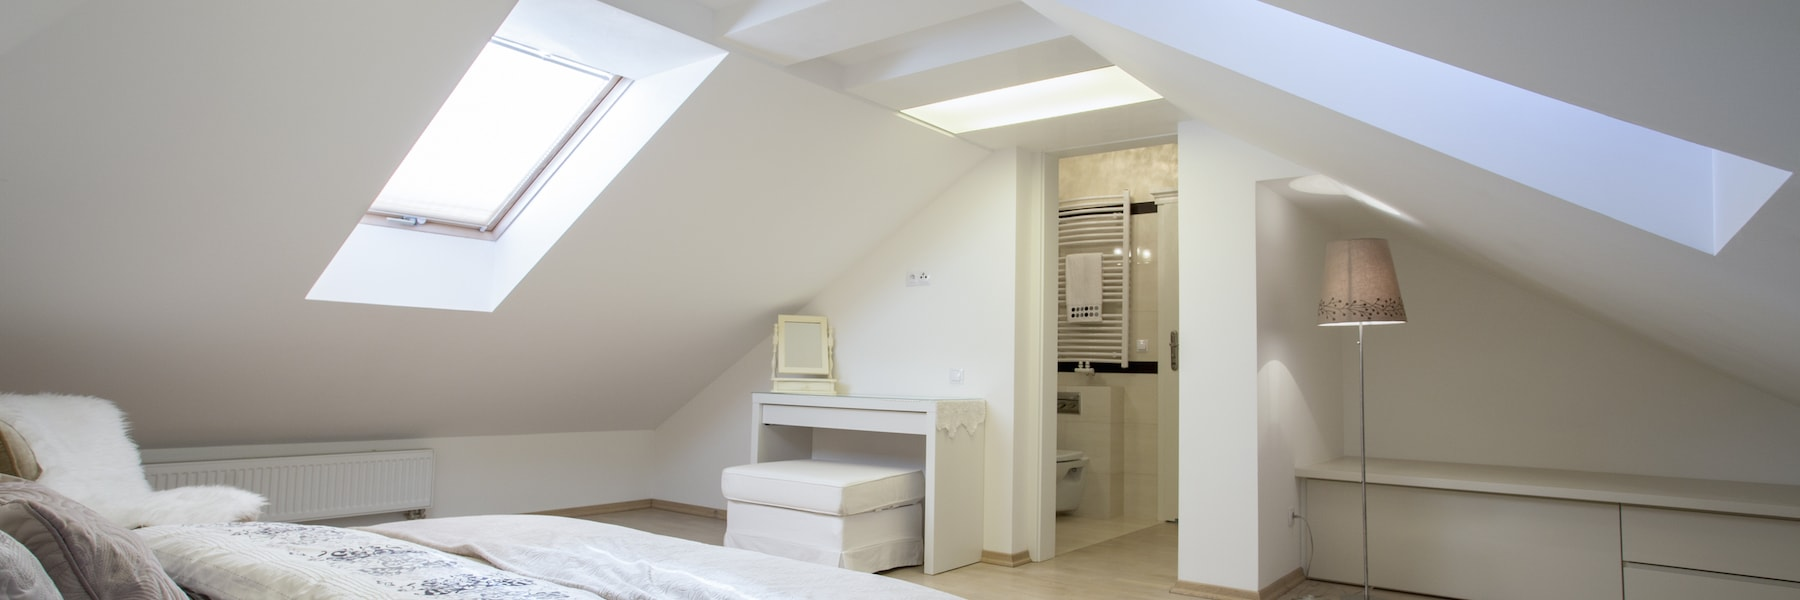 Loft Conversions In Brighton Hove Shoreham Worthing And